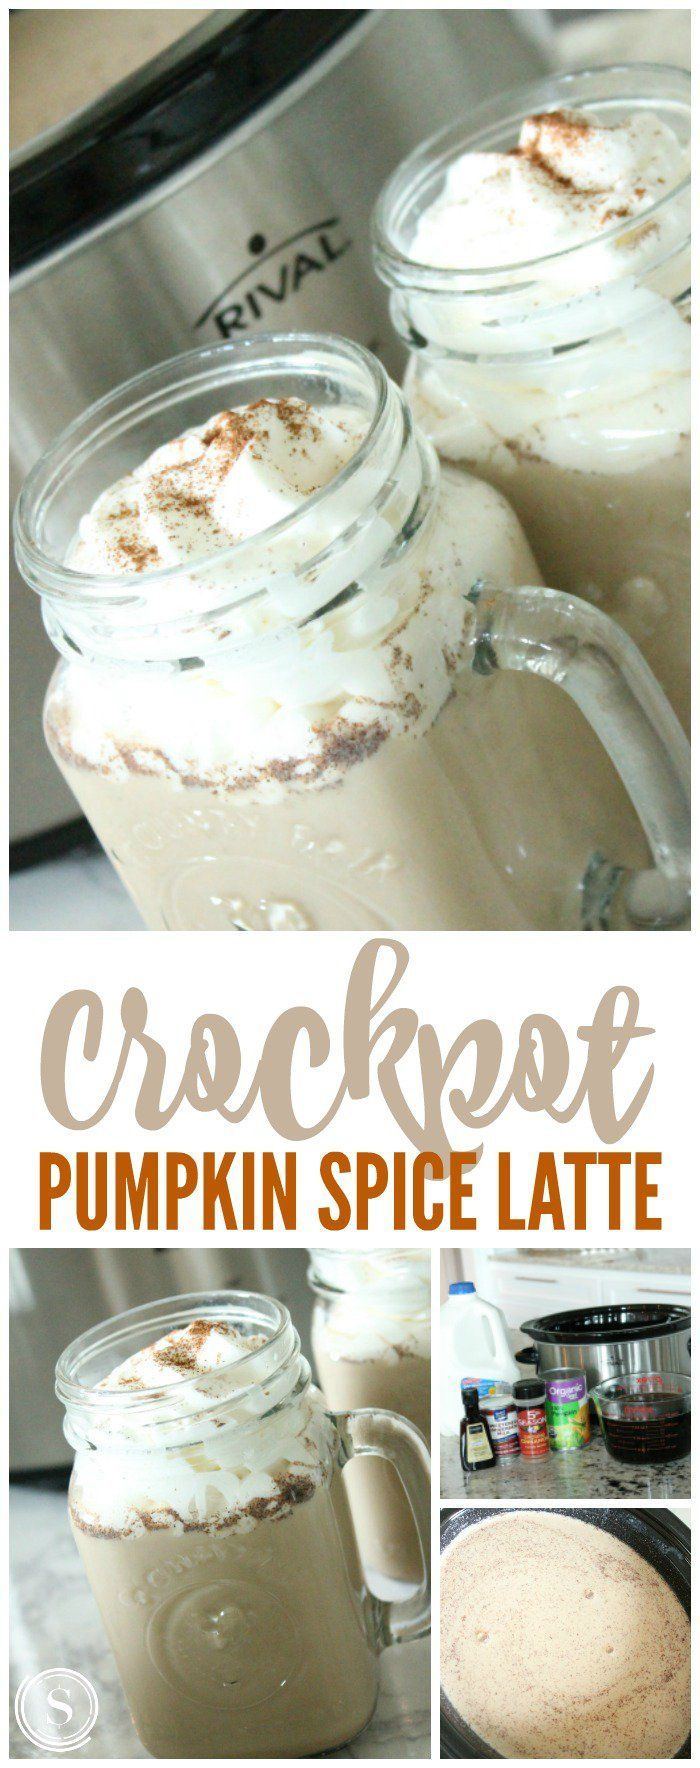 Crockpot Pumpkin Spice Latte! My NEW Favorite Fall Drink Recipe for Thanksgiving, Christmas, Holidays, Parties, and more! Super simple in the slow cooker!